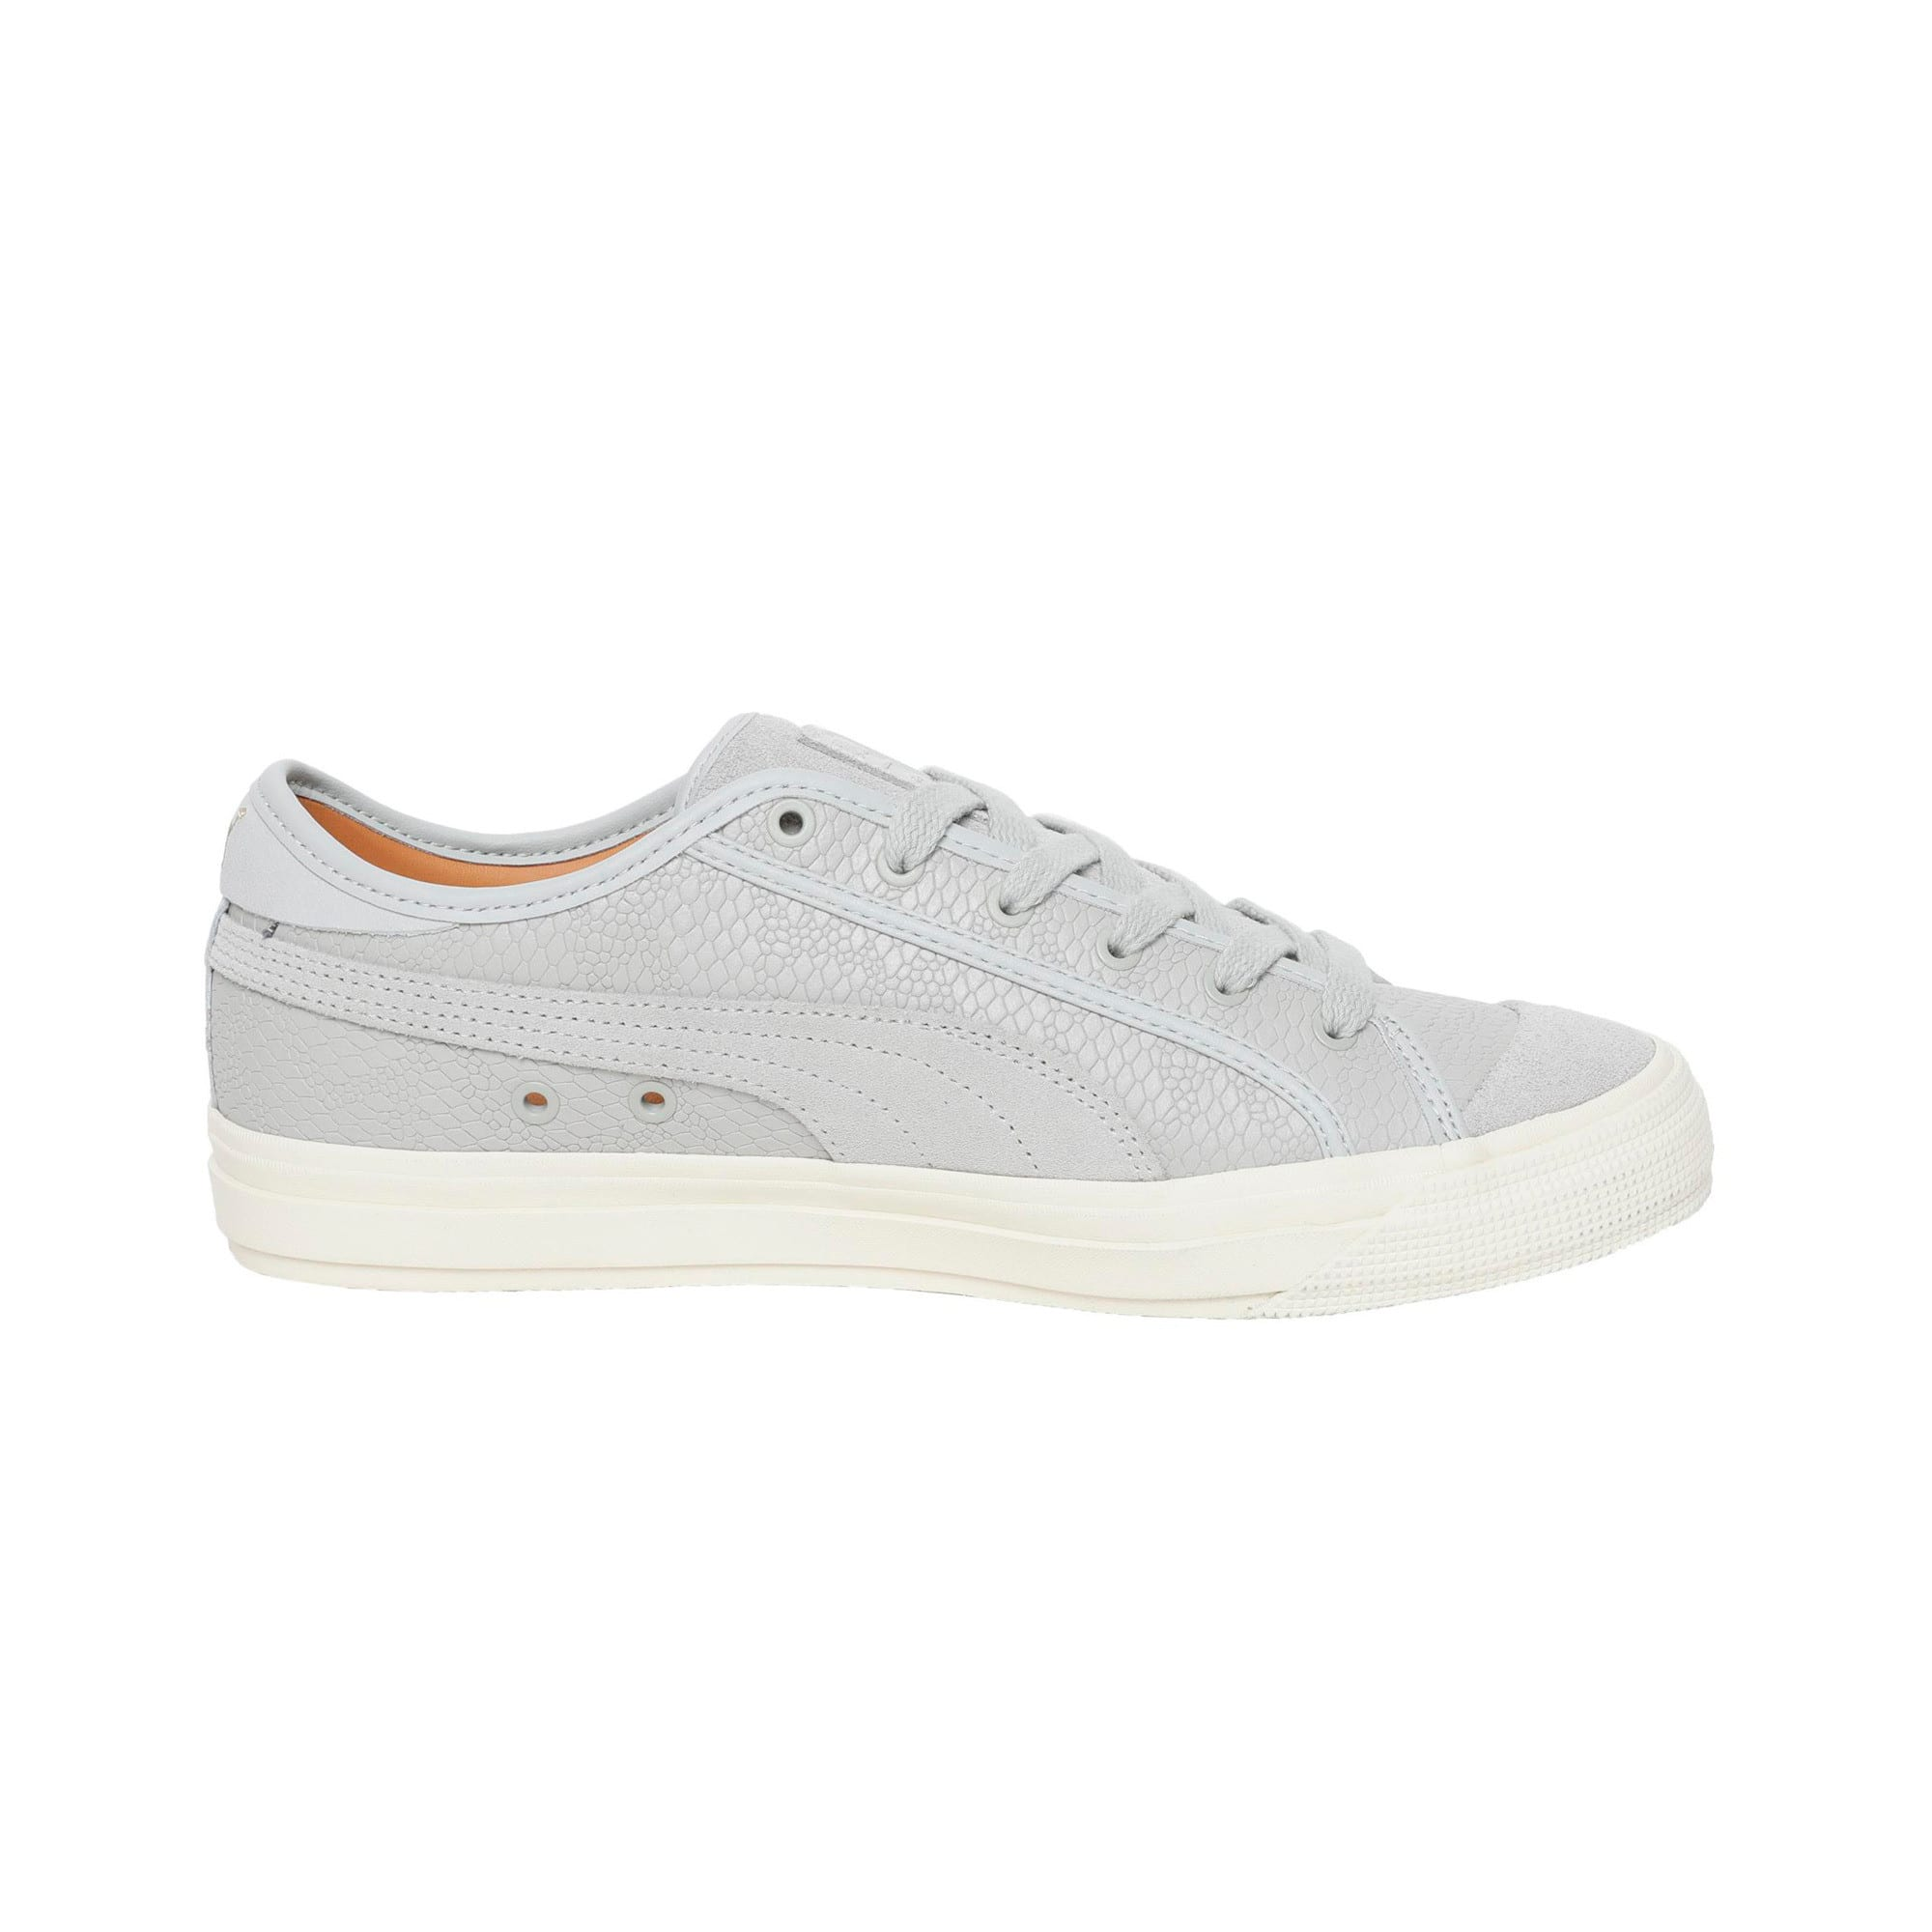 Thumbnail 5 of Capri Sneakers, GryViolt-GryViolet-WhisprWht, medium-IND